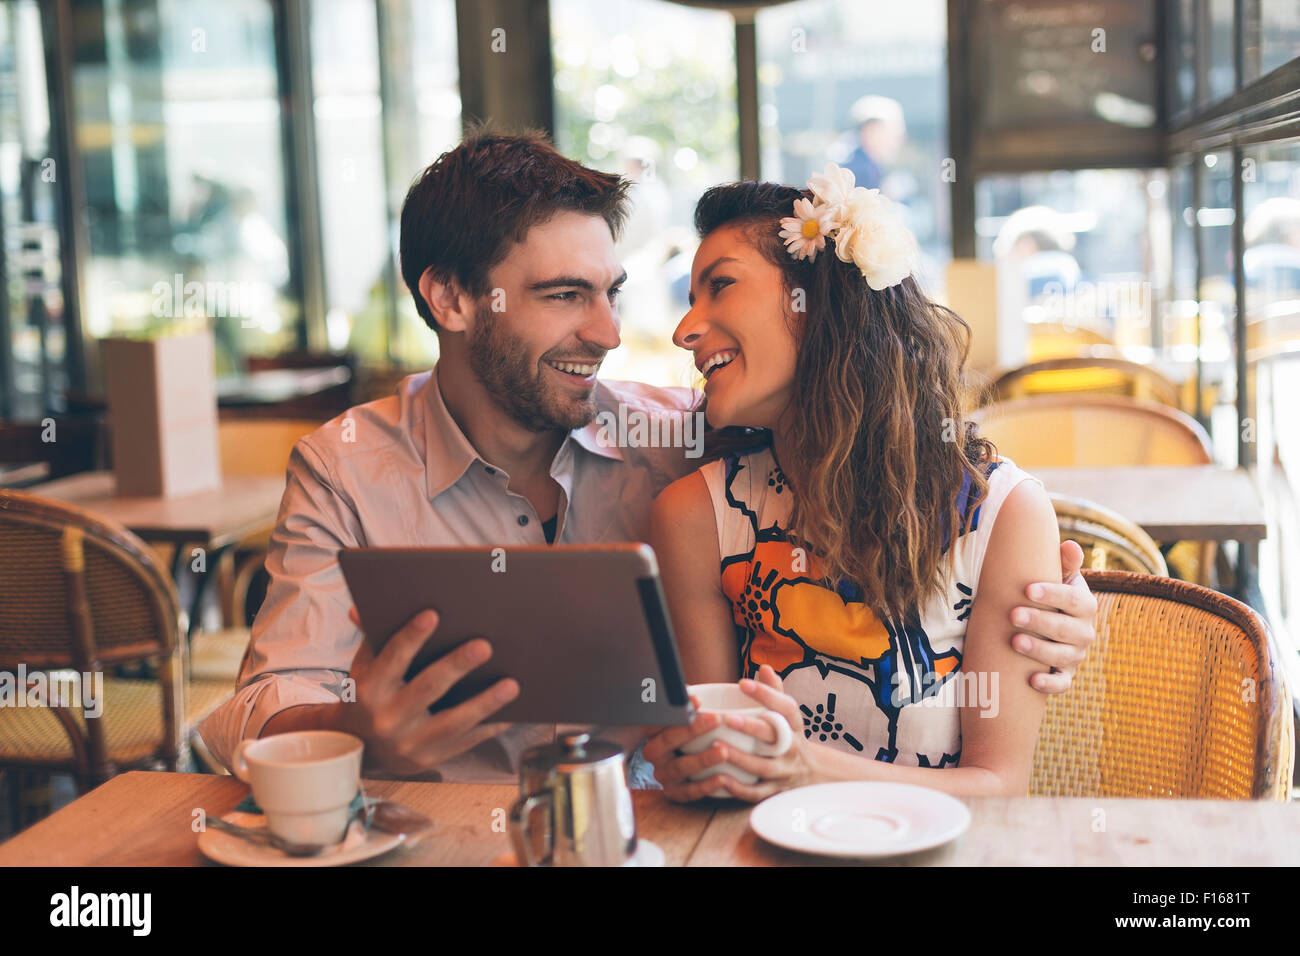 Paris, Couple dating in Cafe - Stock Image